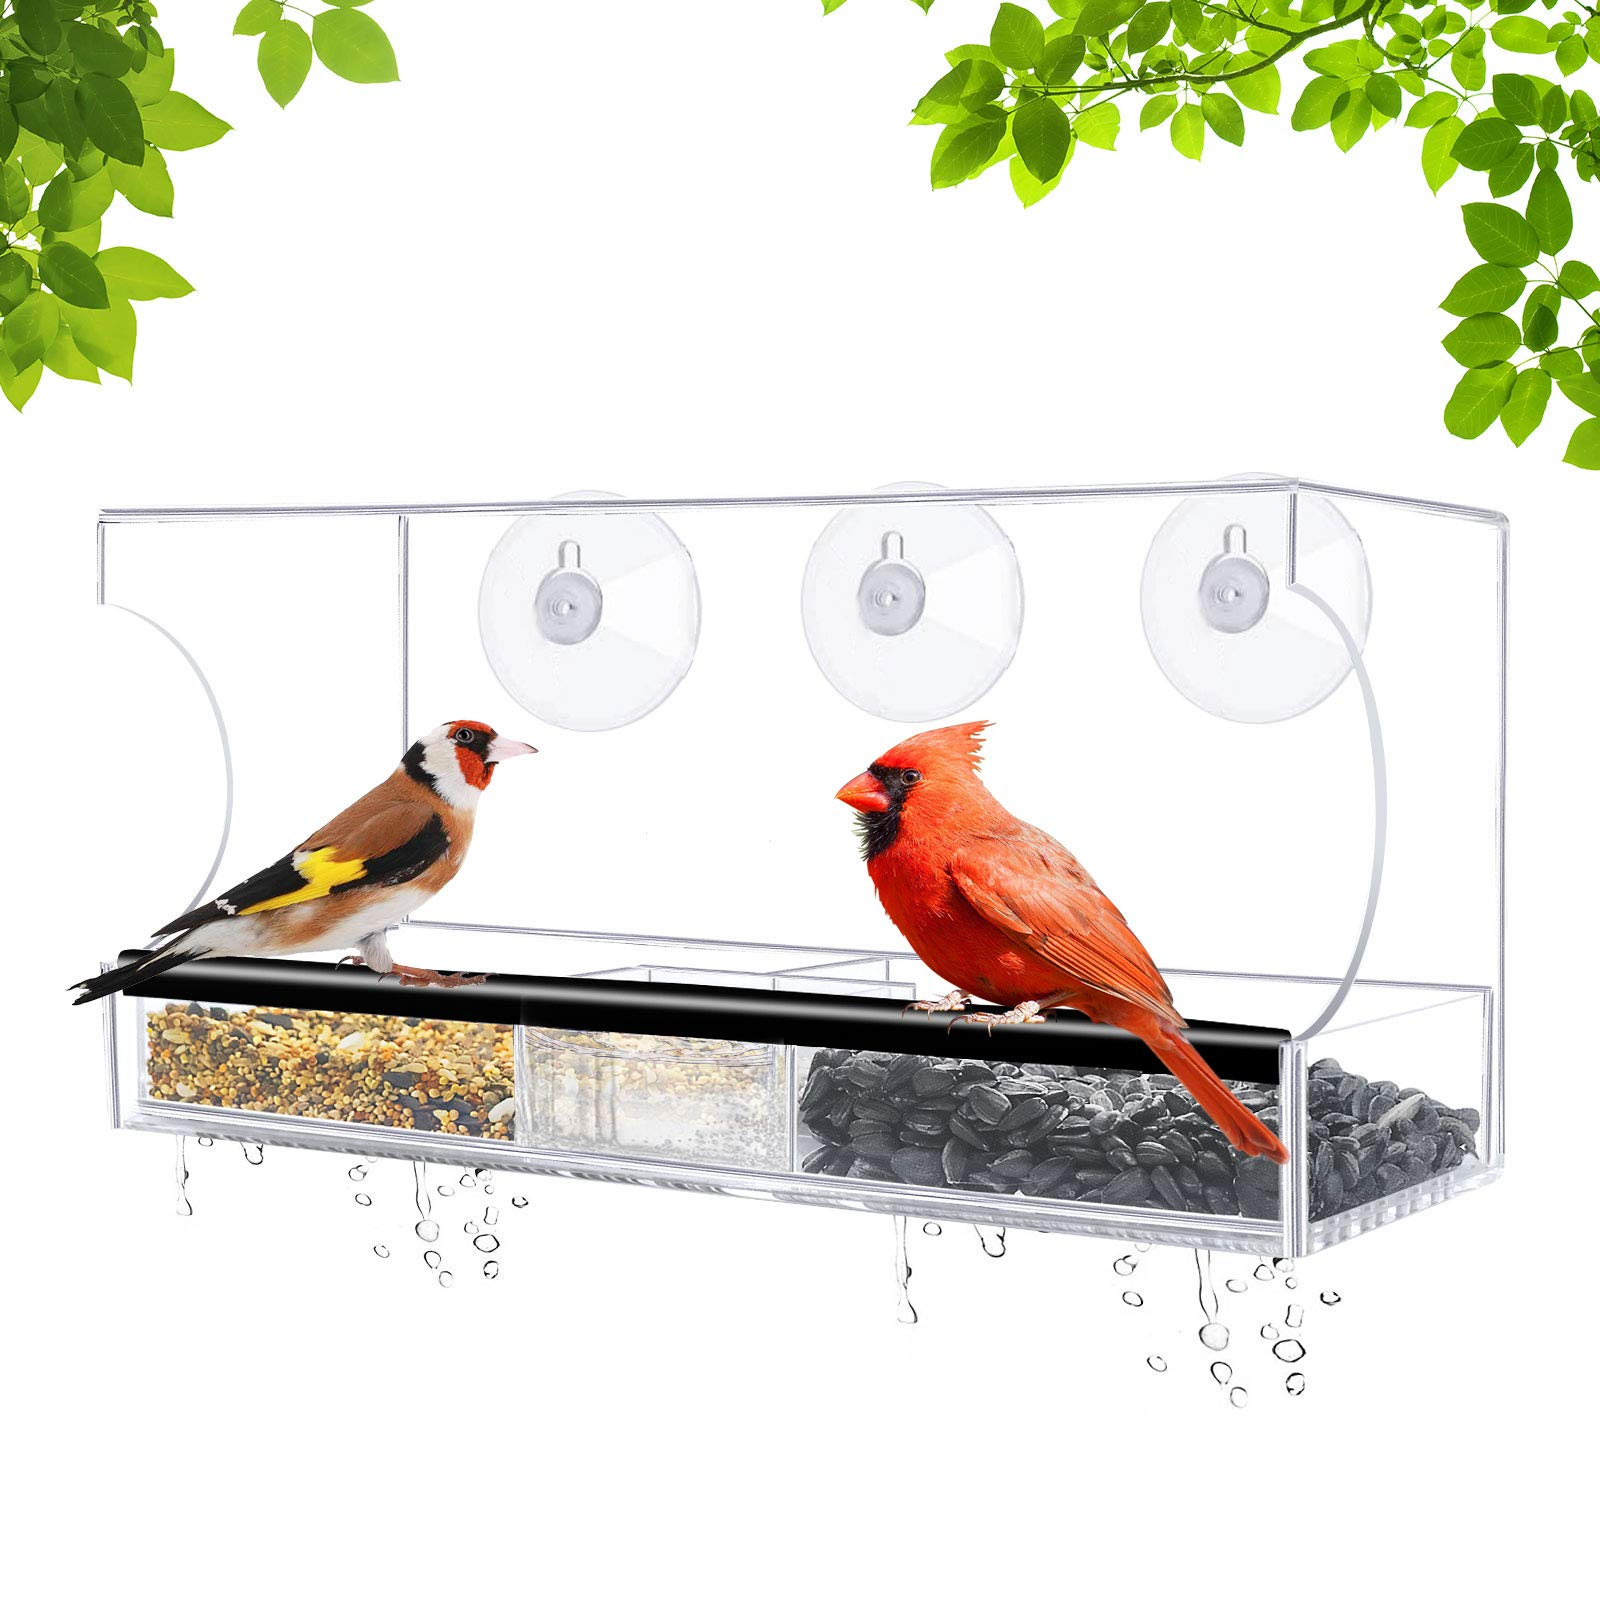 HOTOZON Window Bird Feeder with Extra Strong Suction Cups, Large Clear Acrylic Outdoor Birdfeeder, Removable Seed Tray with Drainage Holes, Transparent Outside Birdhouse for Wild Birds